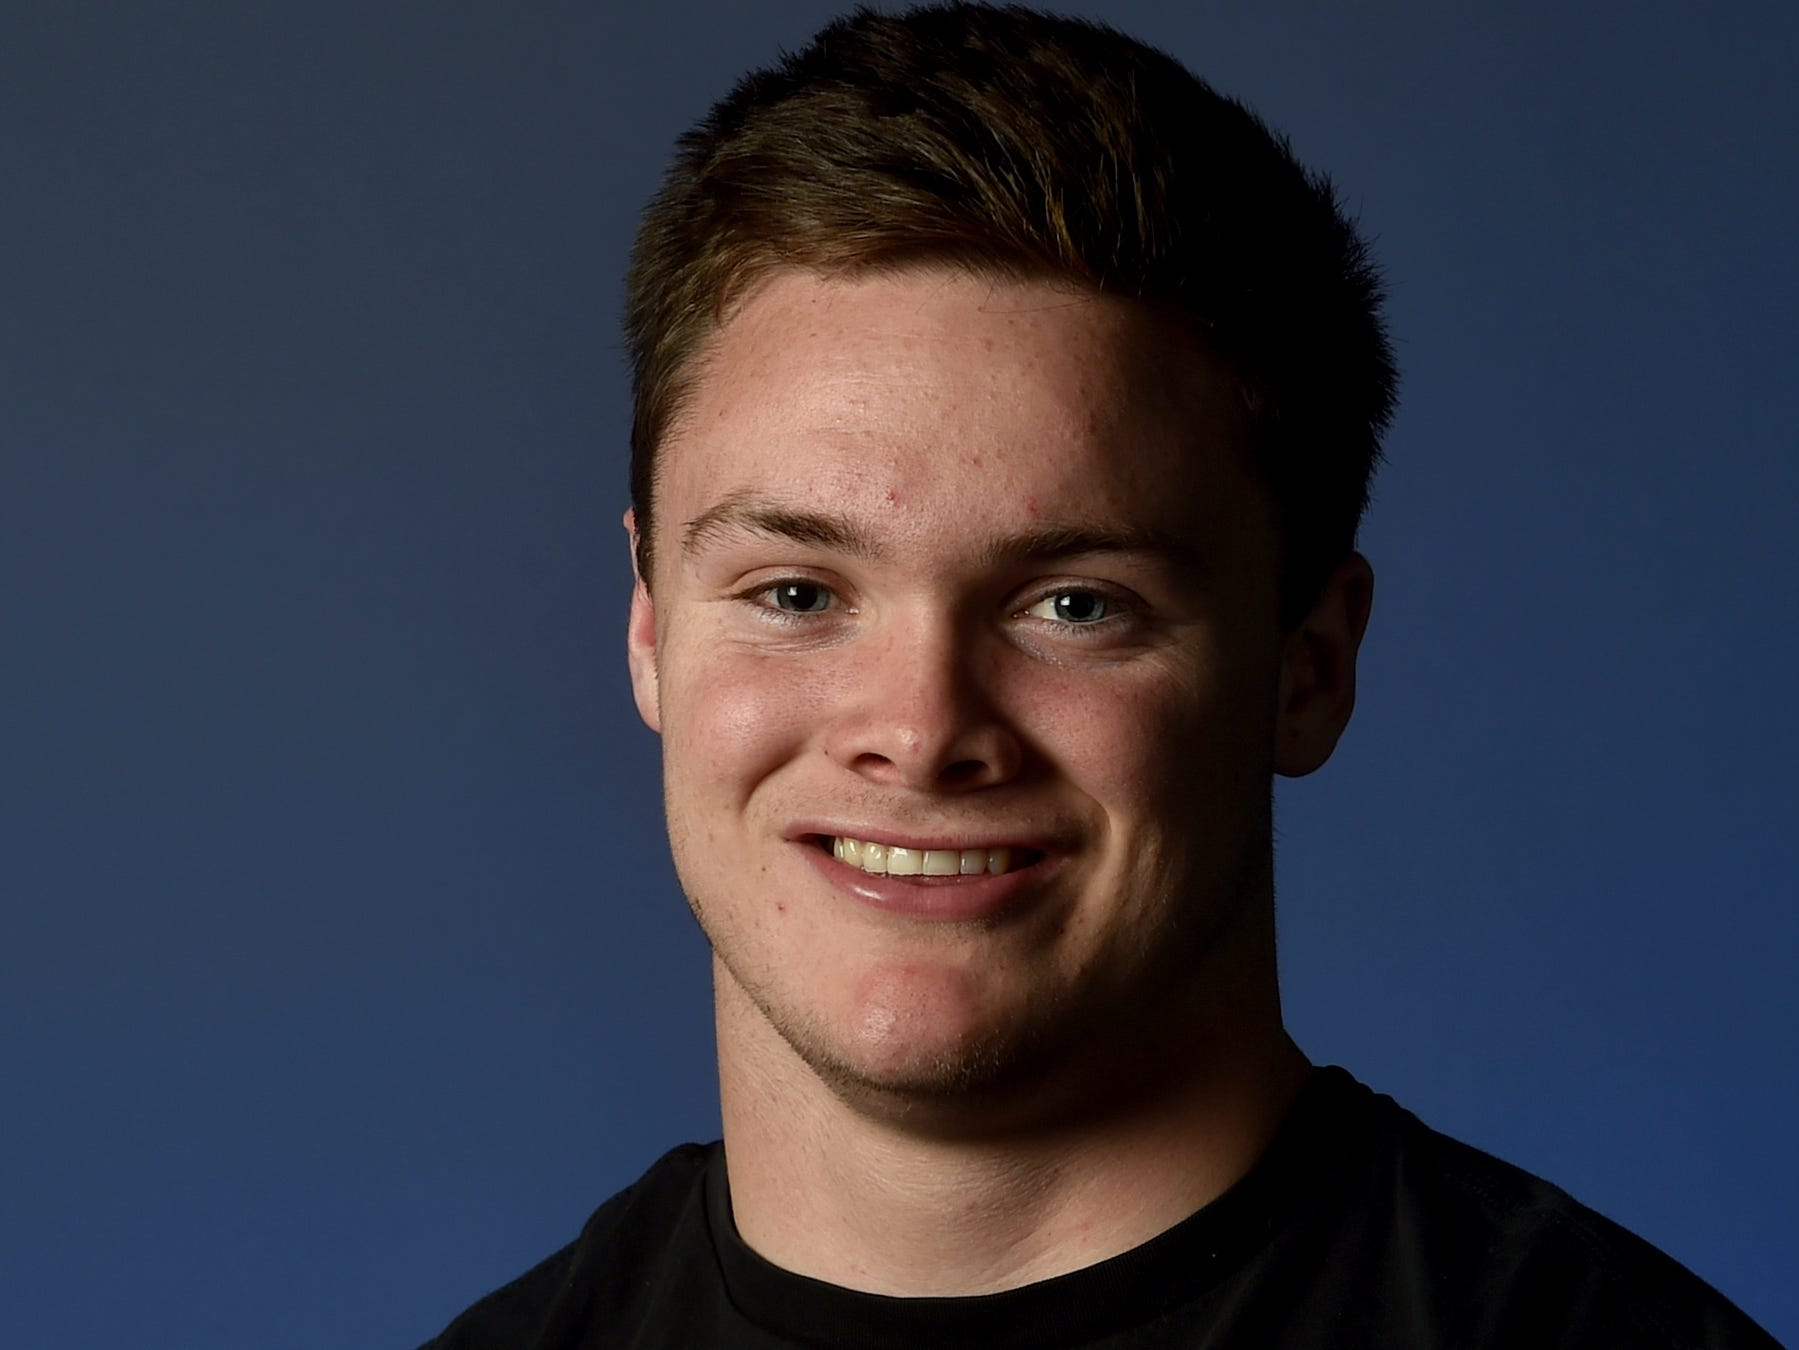 """BLAKE KYTLICA, Rio Mesa, Linebacker: The 5-foot-11, 200-pound senior was a physical player on both sides of the ball for the Spartans. The first-team All-Pacific View League and All-County Coaches linebacker had a team-high 104 tackles, 16 tackles for losses, six sacks, two forced fumbles and a fumble recovery. He had a season-high 14 tackles and four tackles for a loss against Buena. Offensively, as a short-yardage back, he had 206 yards and four TDs rushing. He enjoys surfing, watching """"The Office"""" and eating burgers. His favorite athlete is J.J. Watt and he roots for UCLA."""